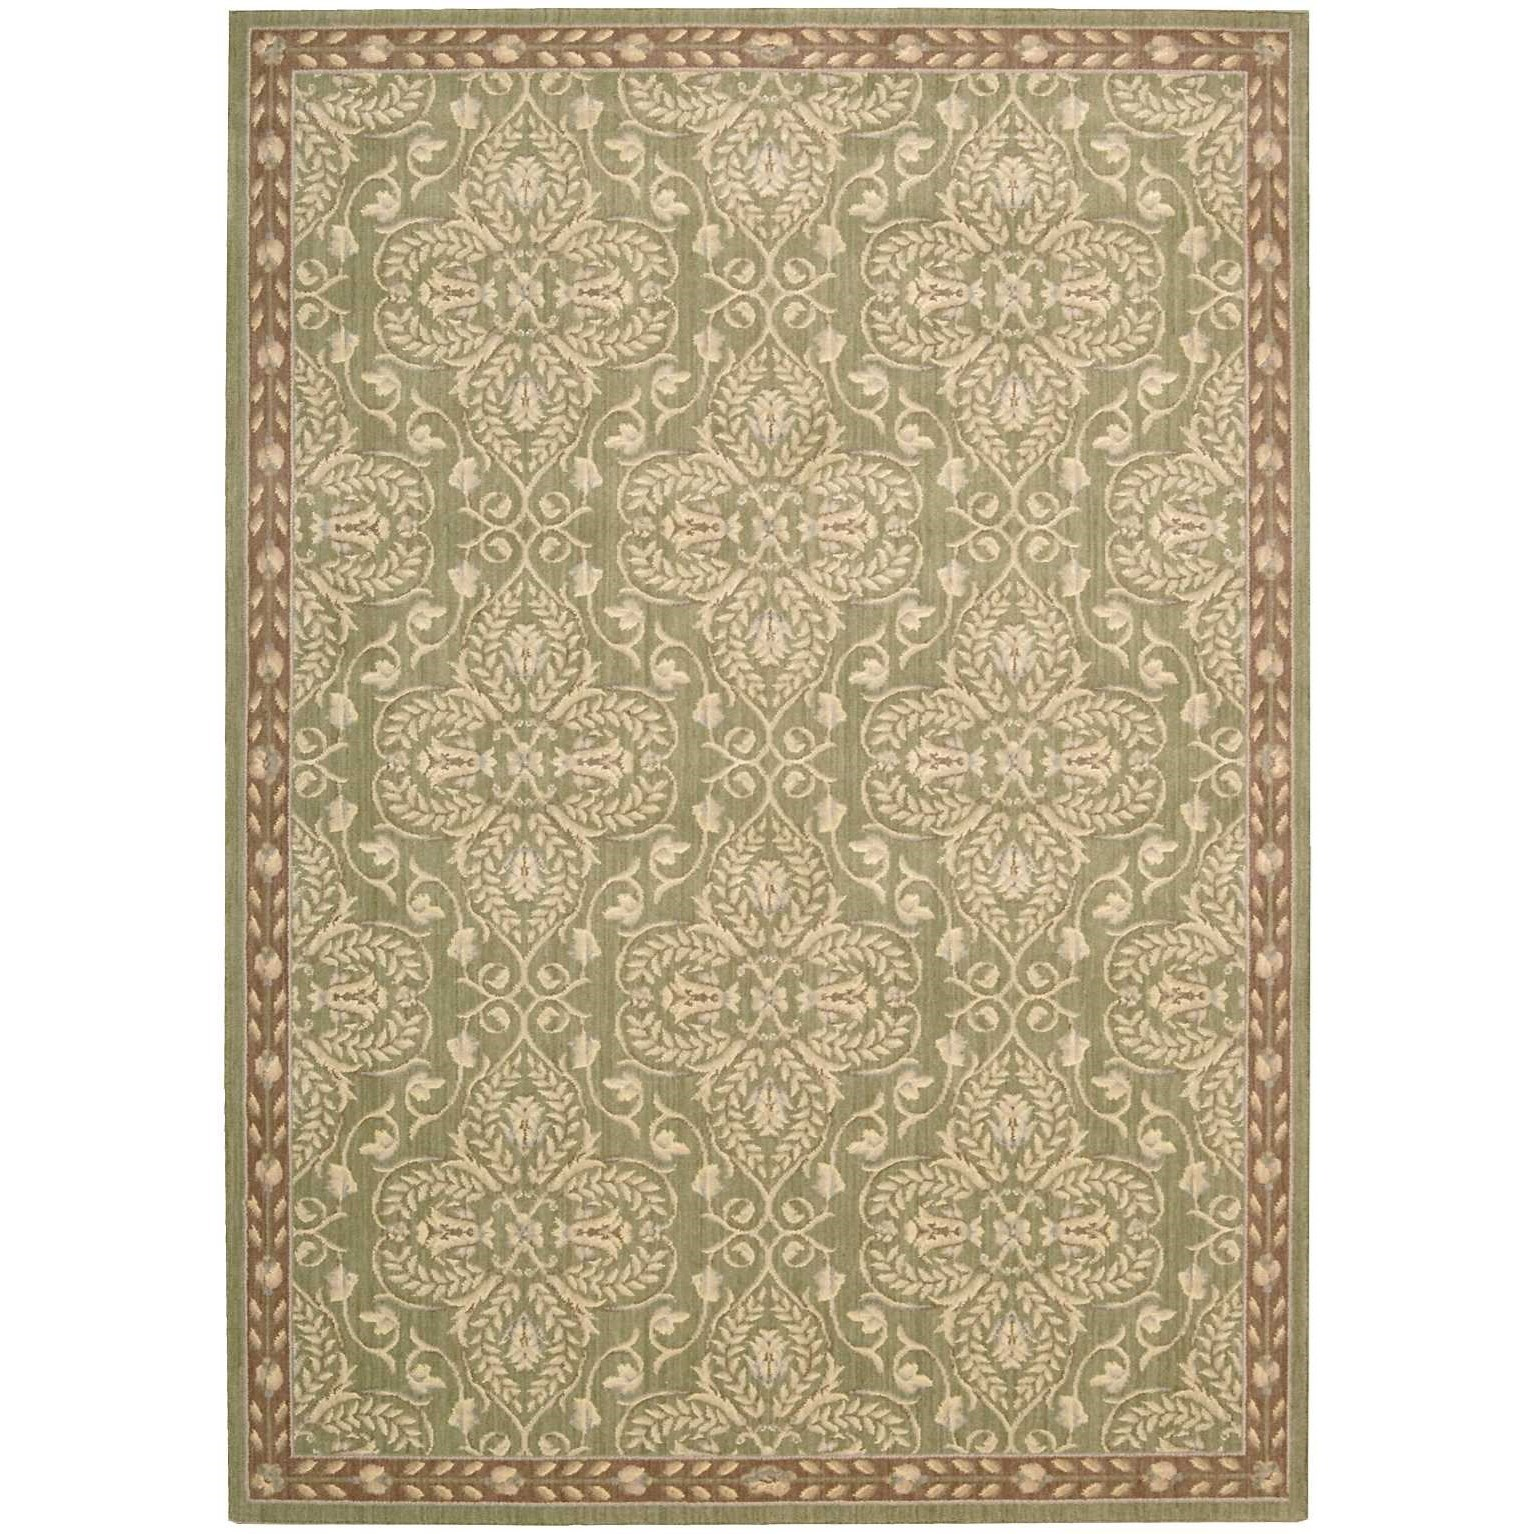 """Riviera 3'6"""" x 5'6"""" Green Rectangle Rug by Nourison at Home Collections Furniture"""